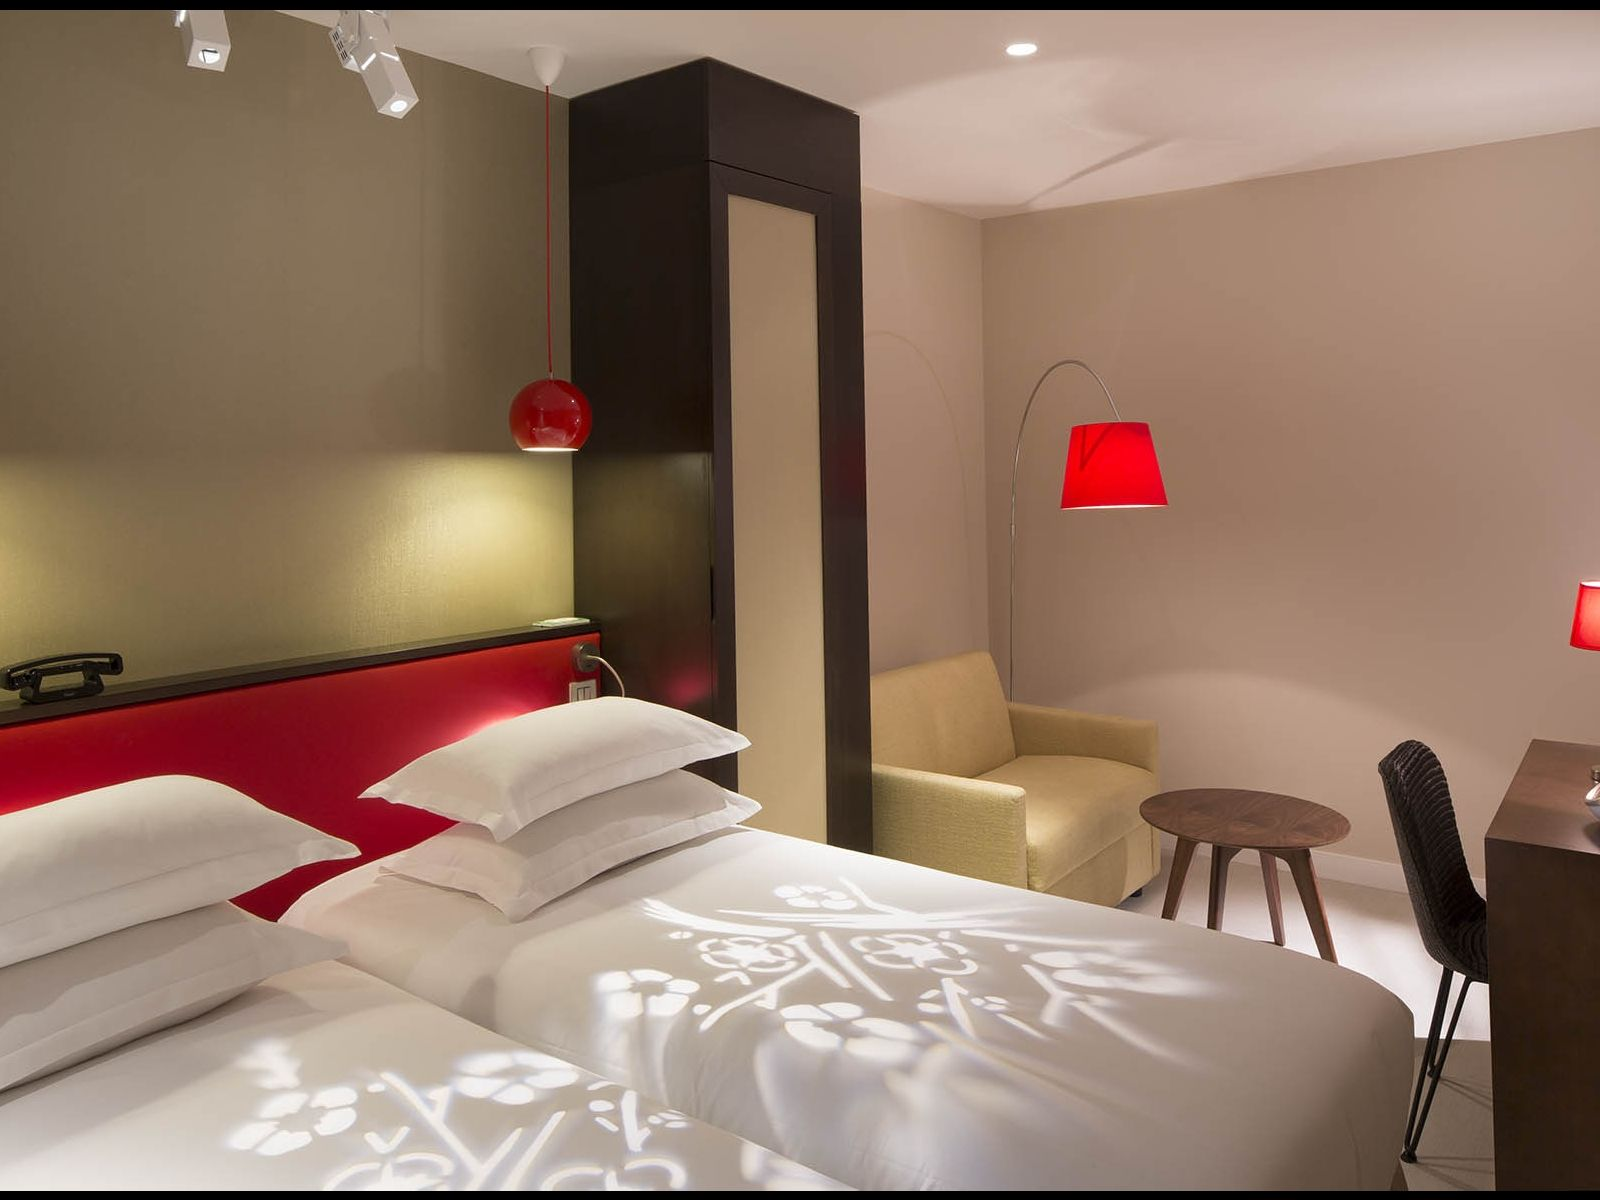 hotel eden paris chambres hotel avec jardin paris. Black Bedroom Furniture Sets. Home Design Ideas